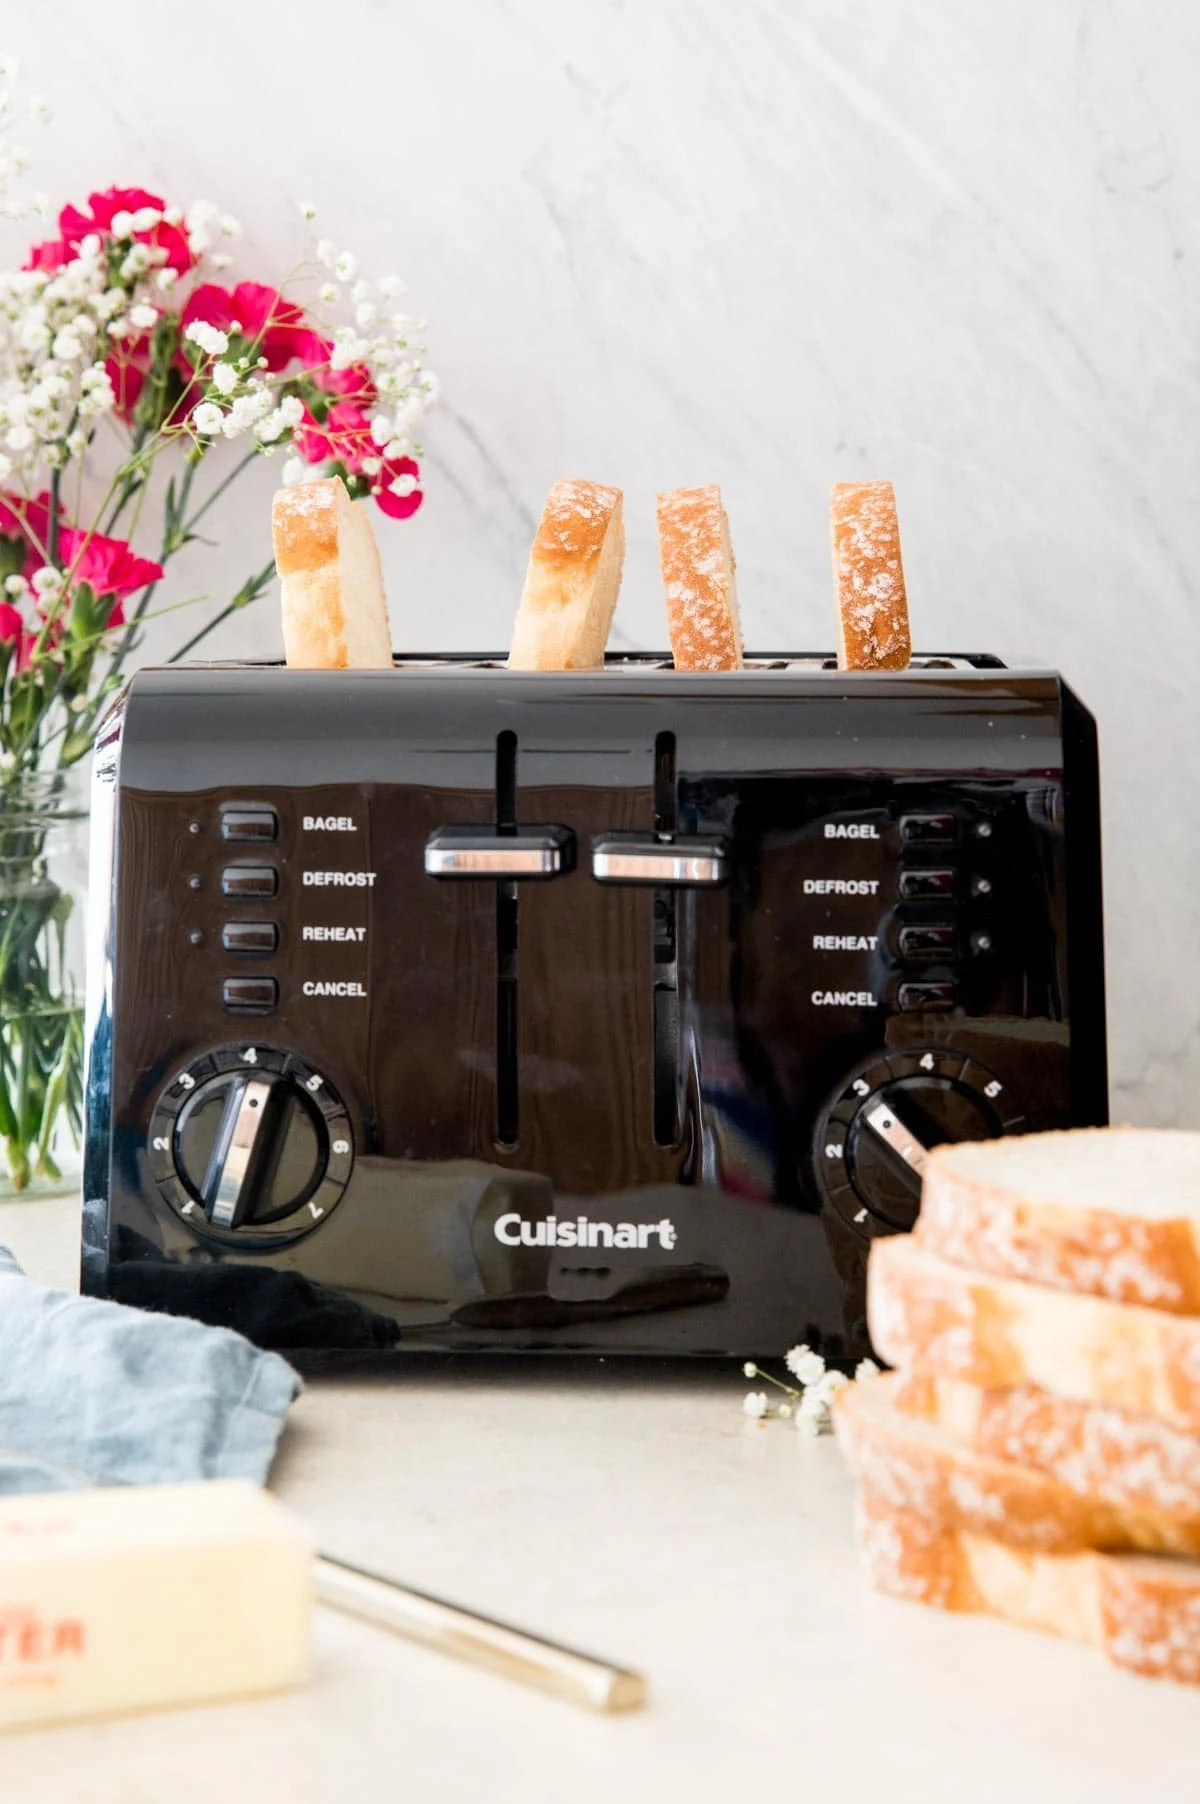 4 pieces of toast in a black toaster with pink and white flowers in the background